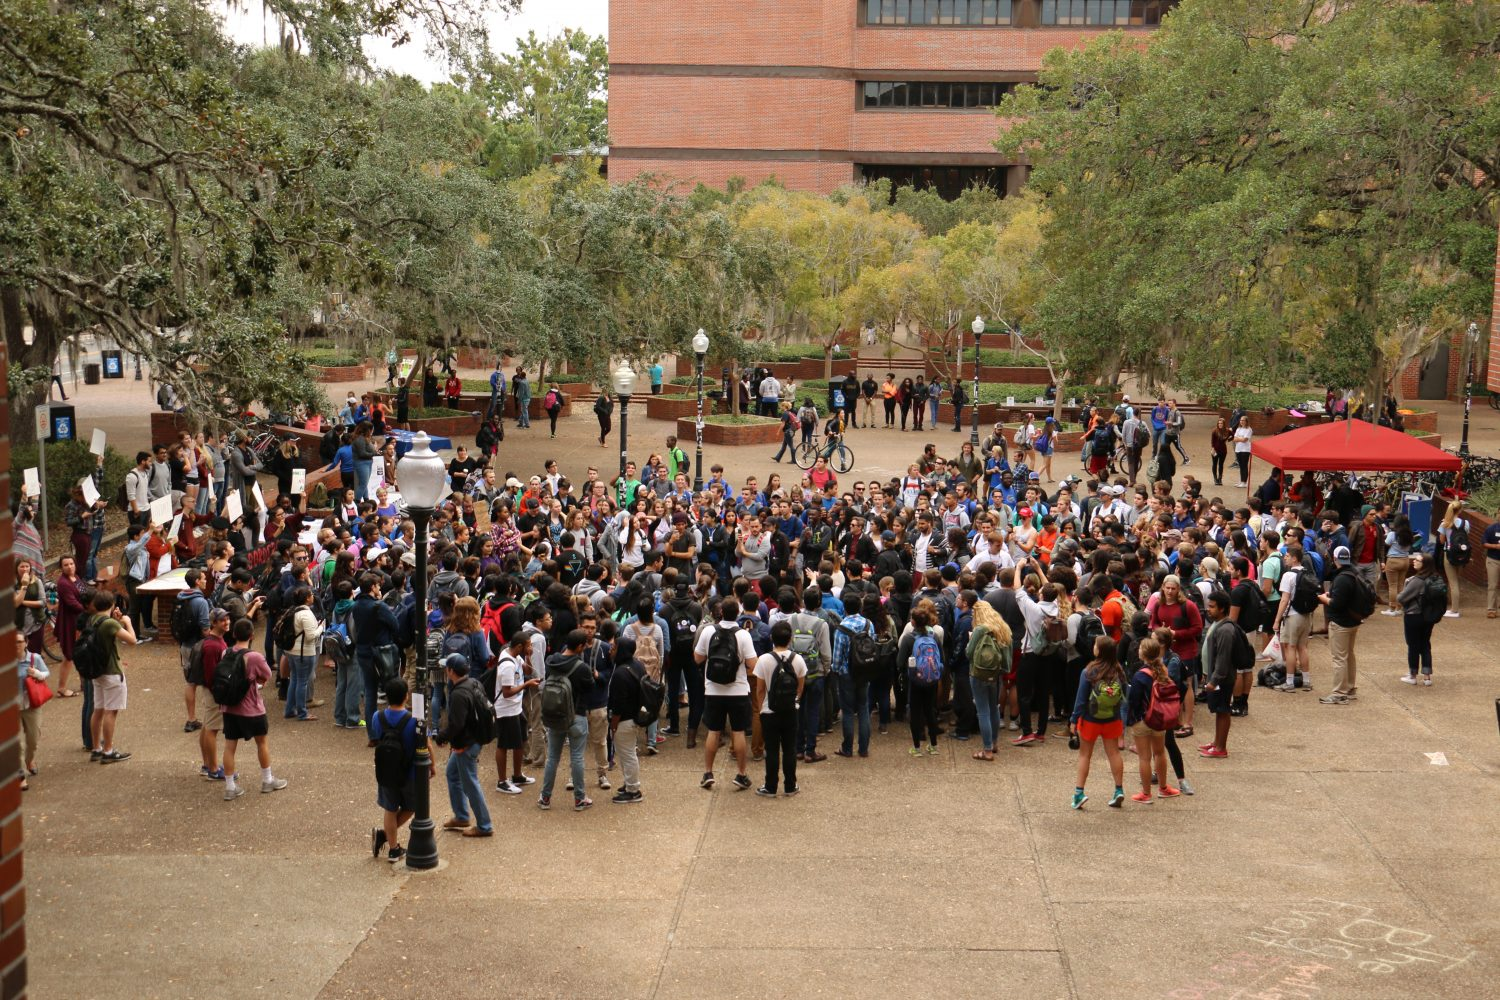 Maybe 150 or more gather at the UF's Turlington Plaza Monday for an anti-Trump protest, which was countered by Trump supporters. (Rachel Wang/WUFT News)